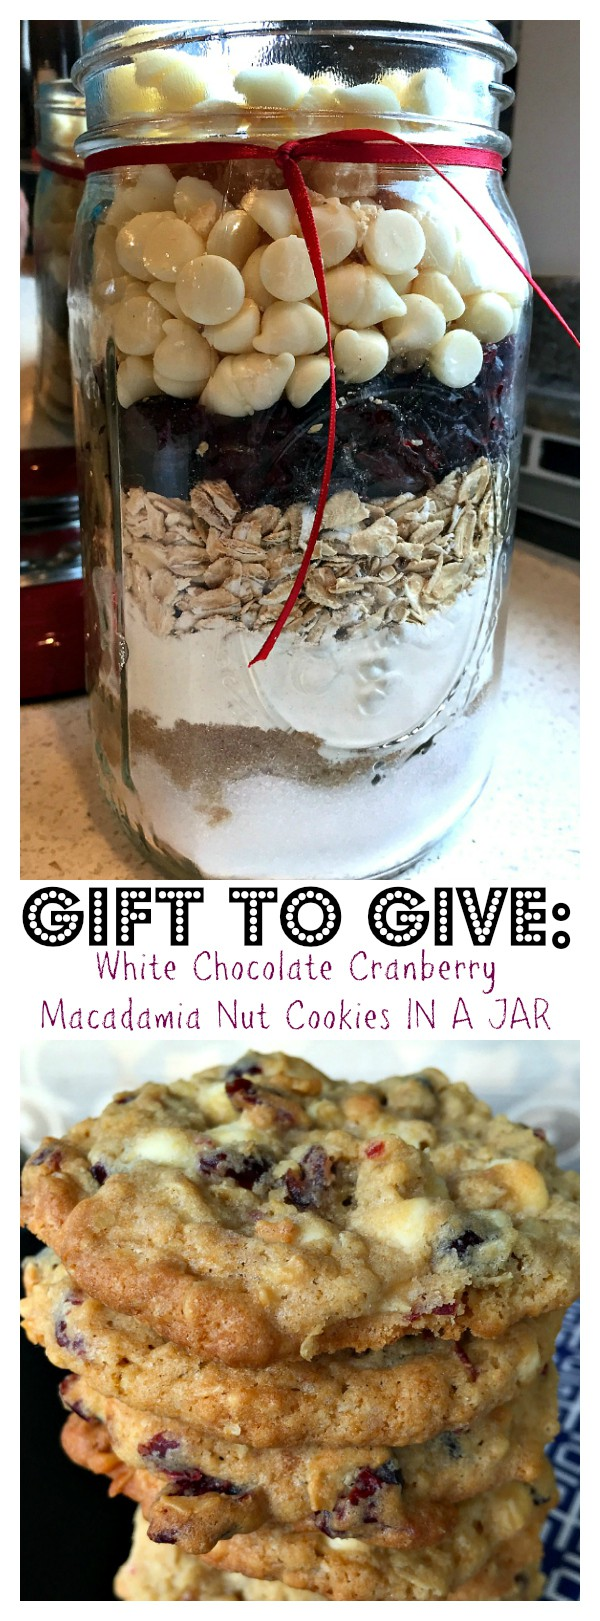 White Chocolate Cranberry Macadamia Nut Cookies in a Jar ...